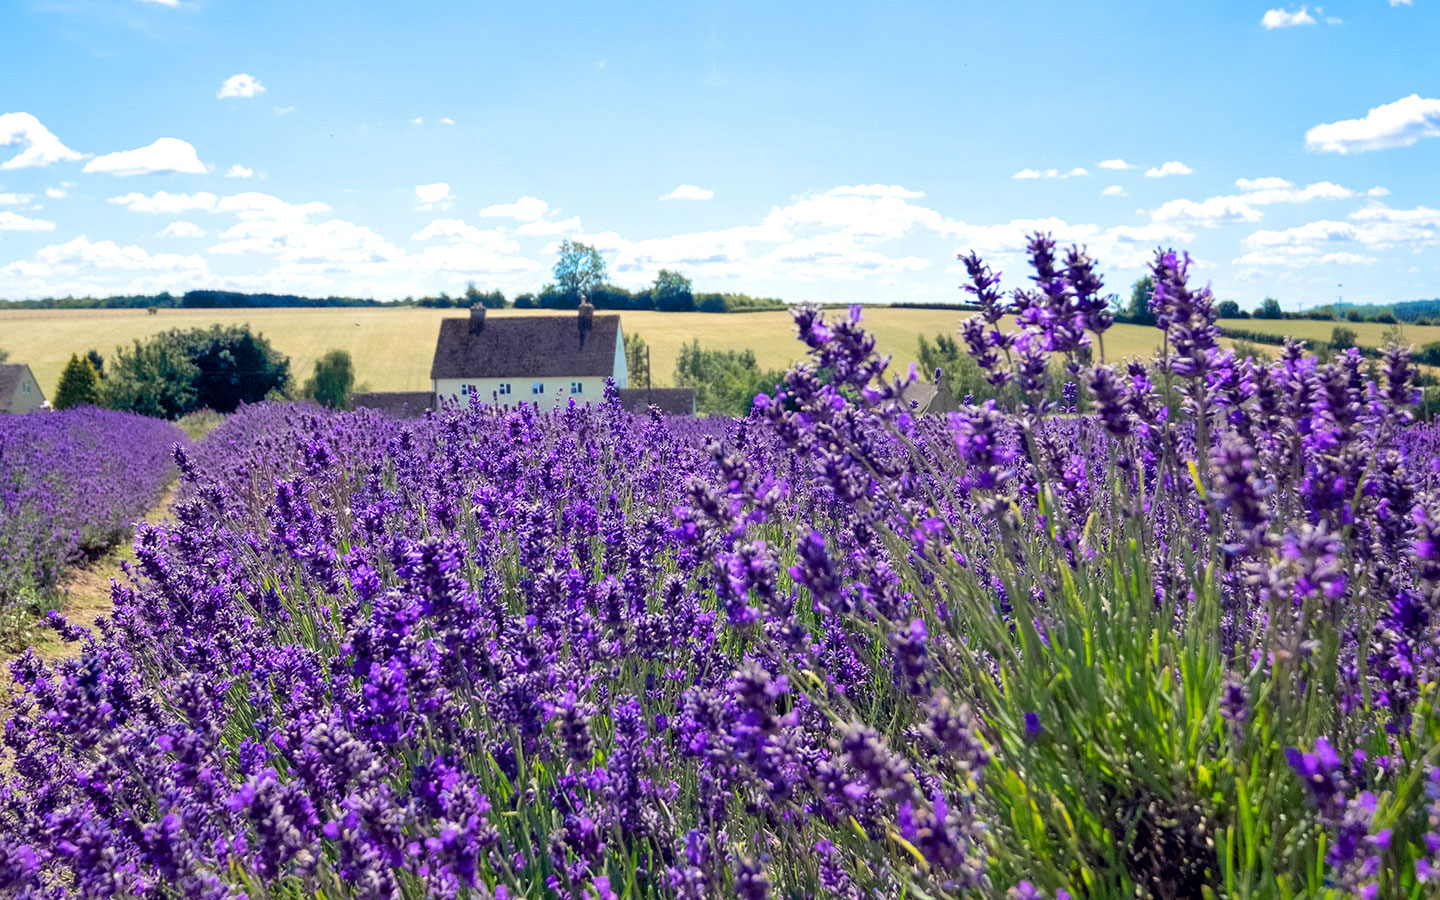 Visiting the Cotswold Lavender fields near Broadway